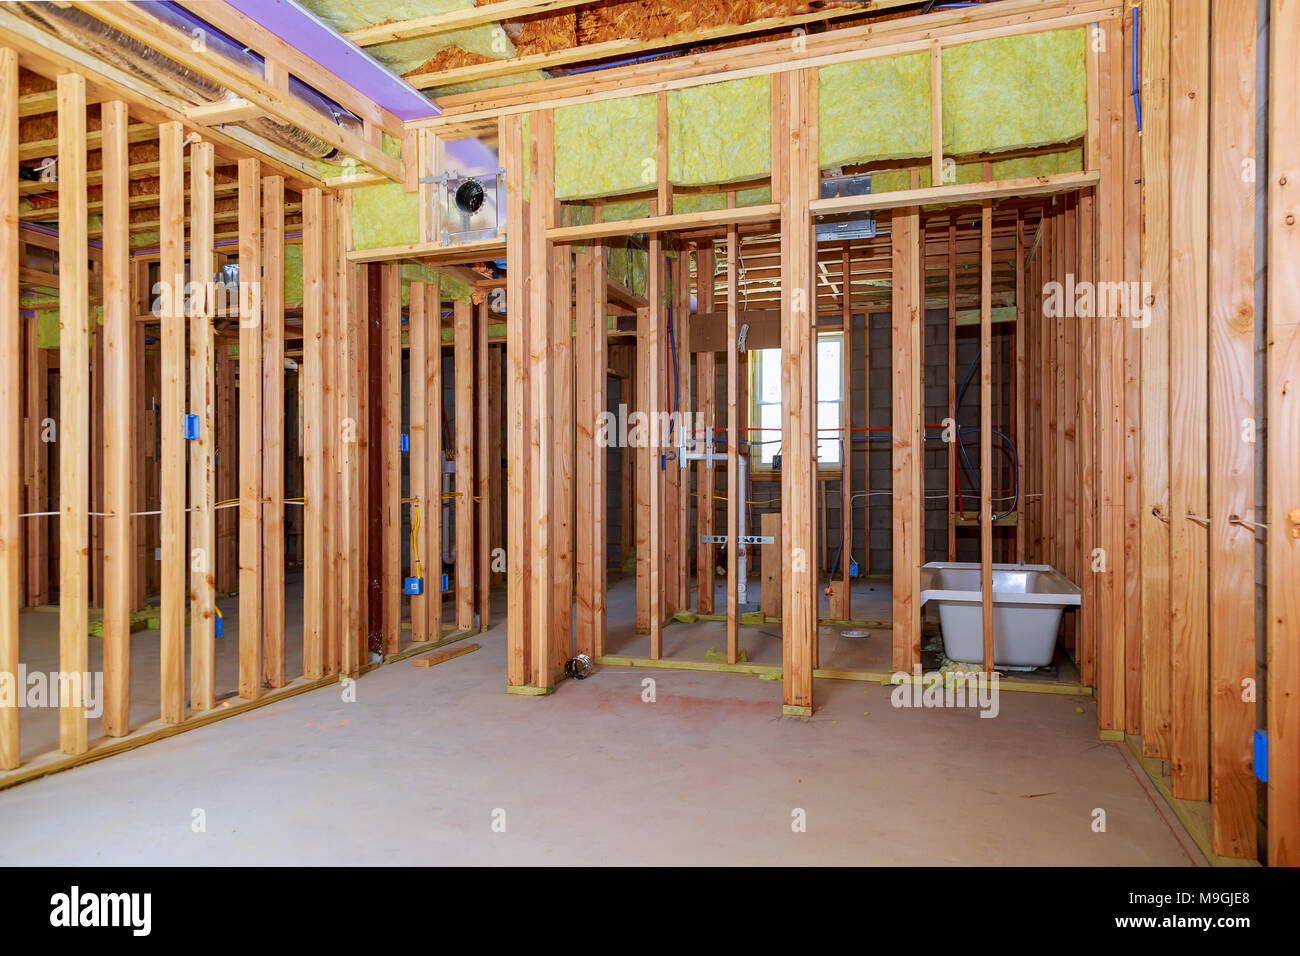 Plomberie Salle De Bain Sous Sol electrical and plumbing system in ceiling photos